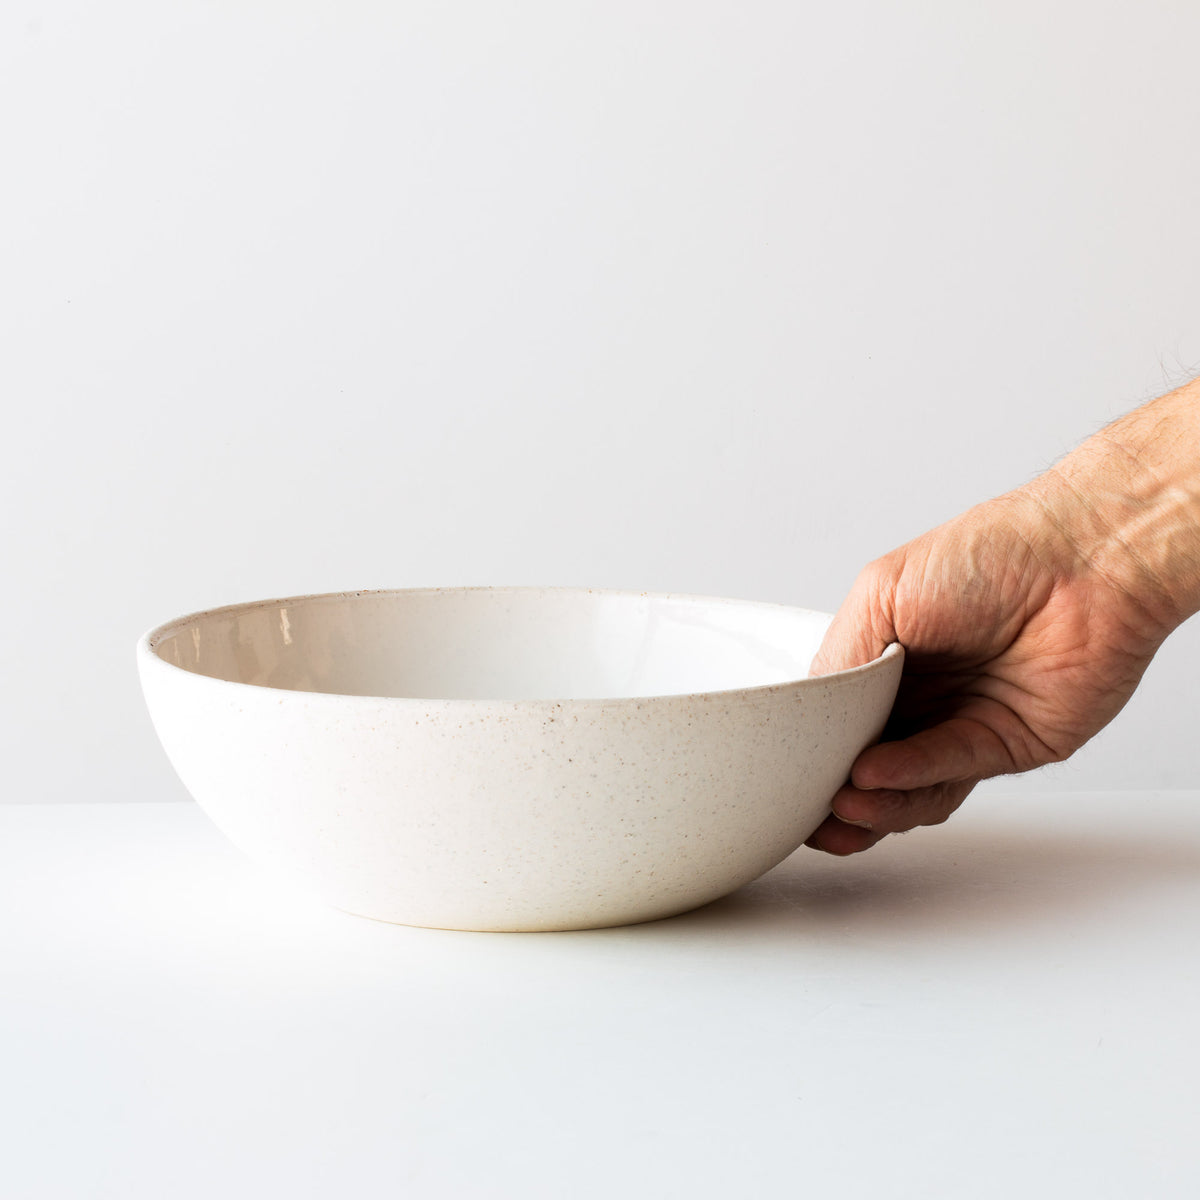 Handmade Large Ceramic Serving Bowl - In Oatmeal White Porcelain - Sold by Chic & Basta